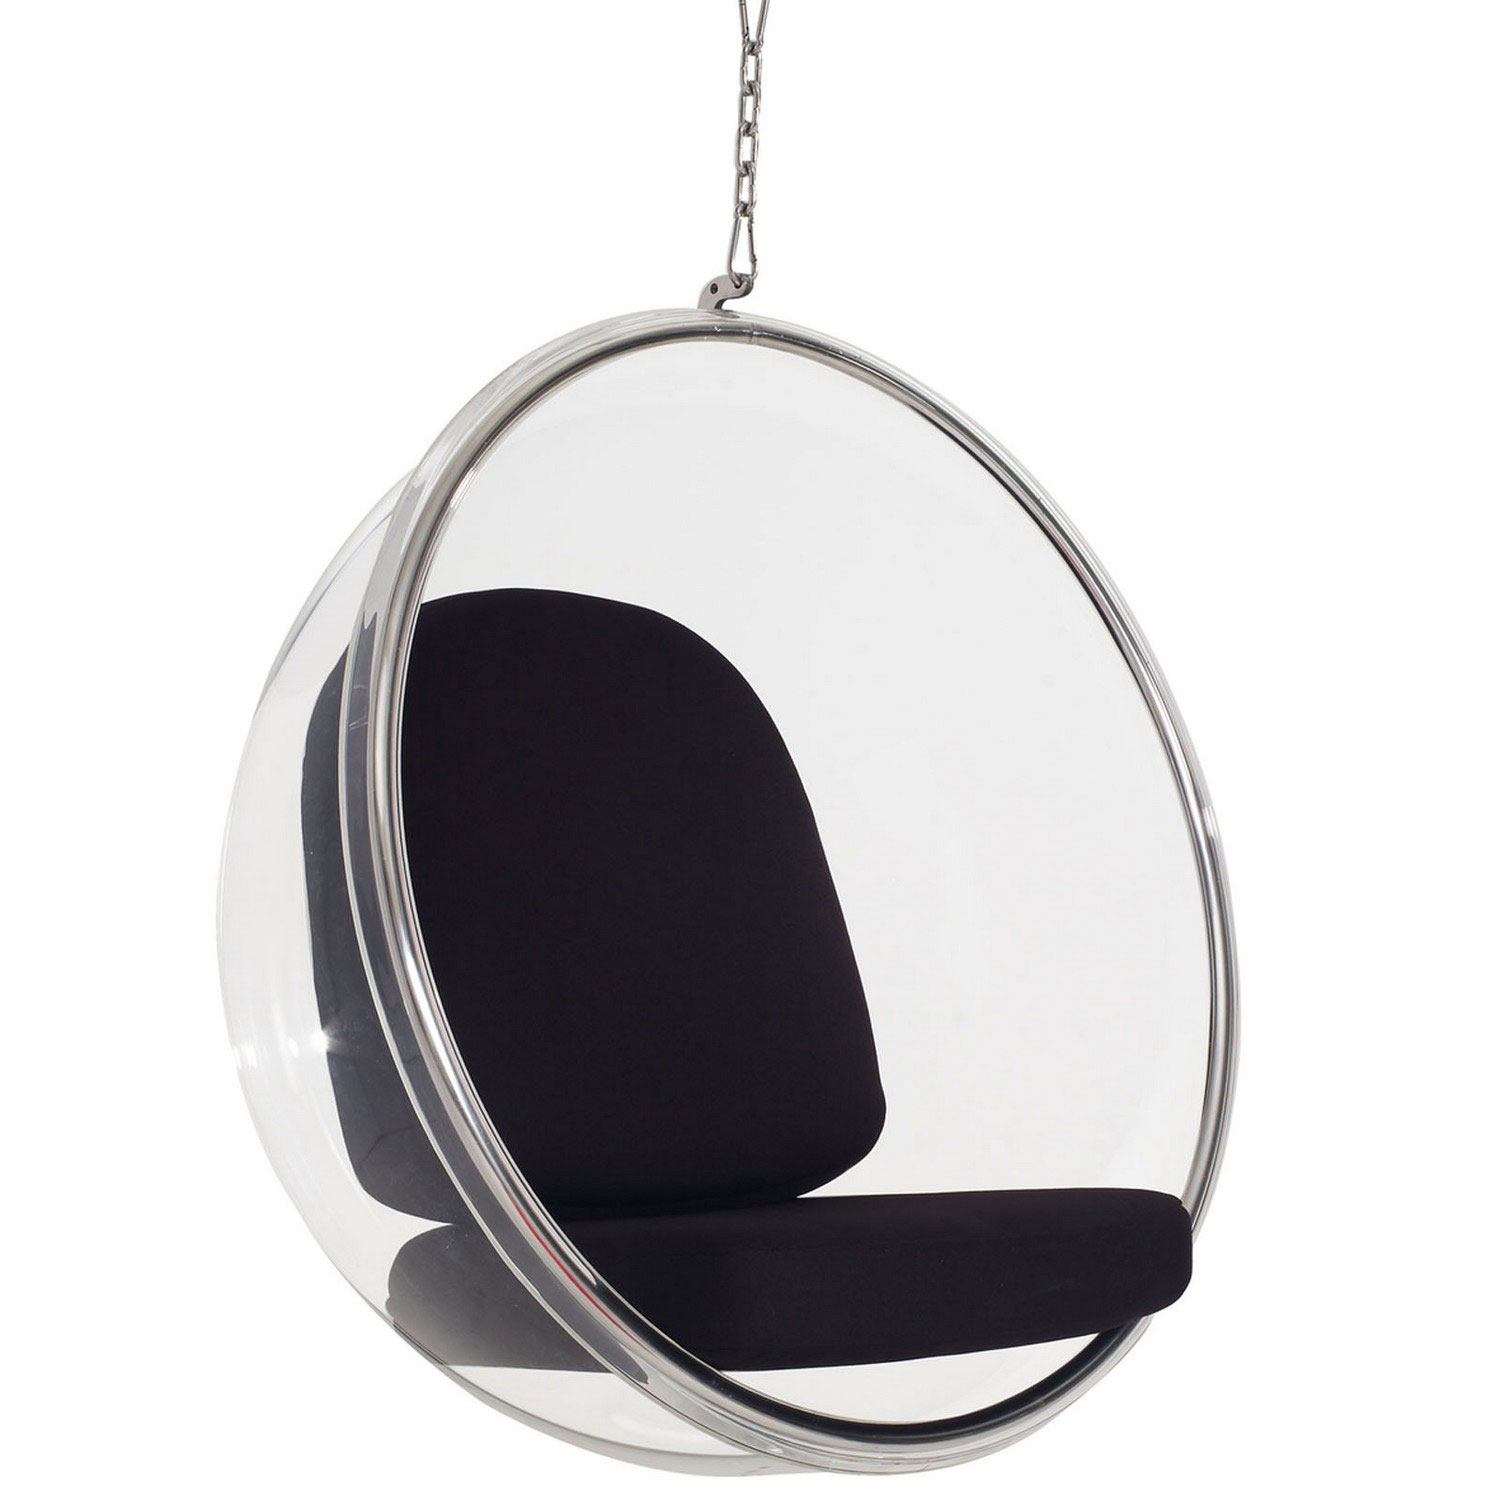 Modway Ring Lounge Chair - Black